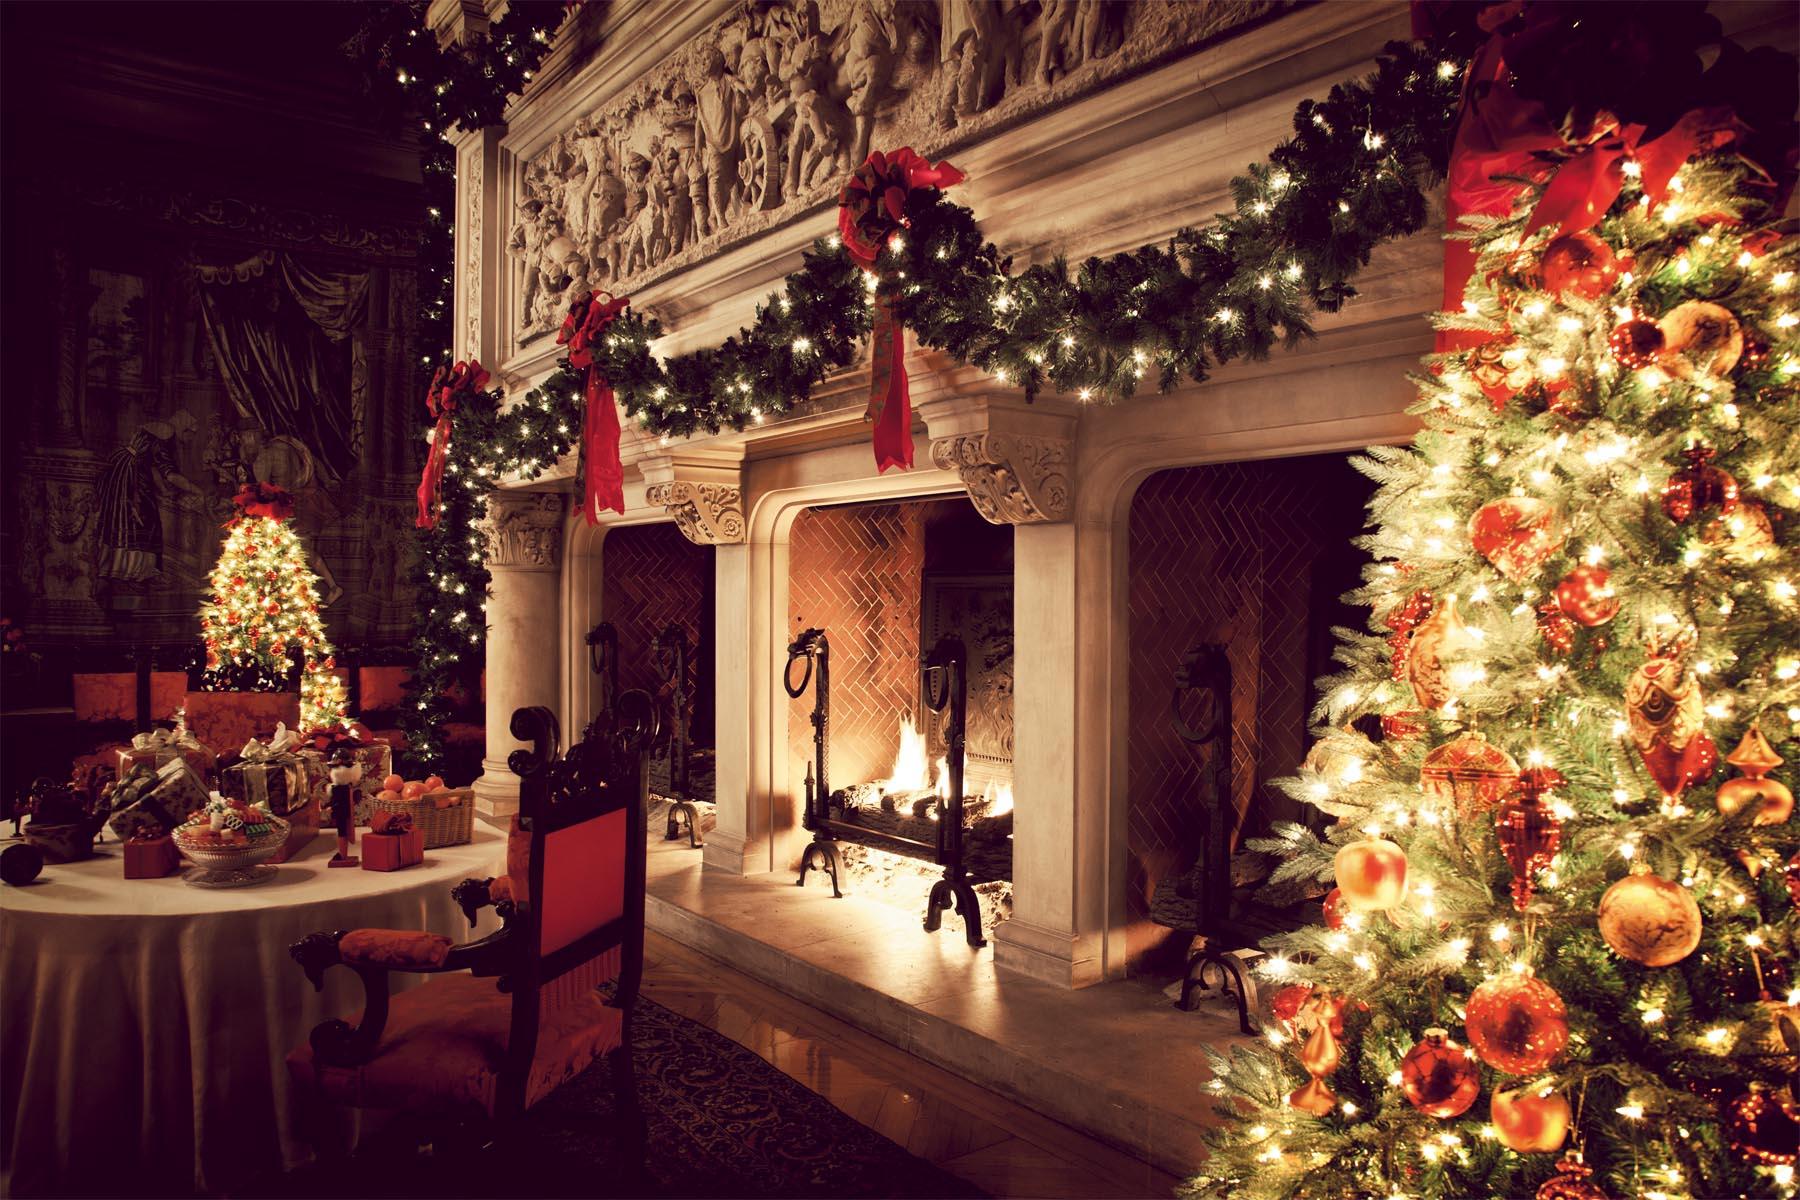 Christmas Fireplace Background Images amp Pictures   Becuo 1800x1200